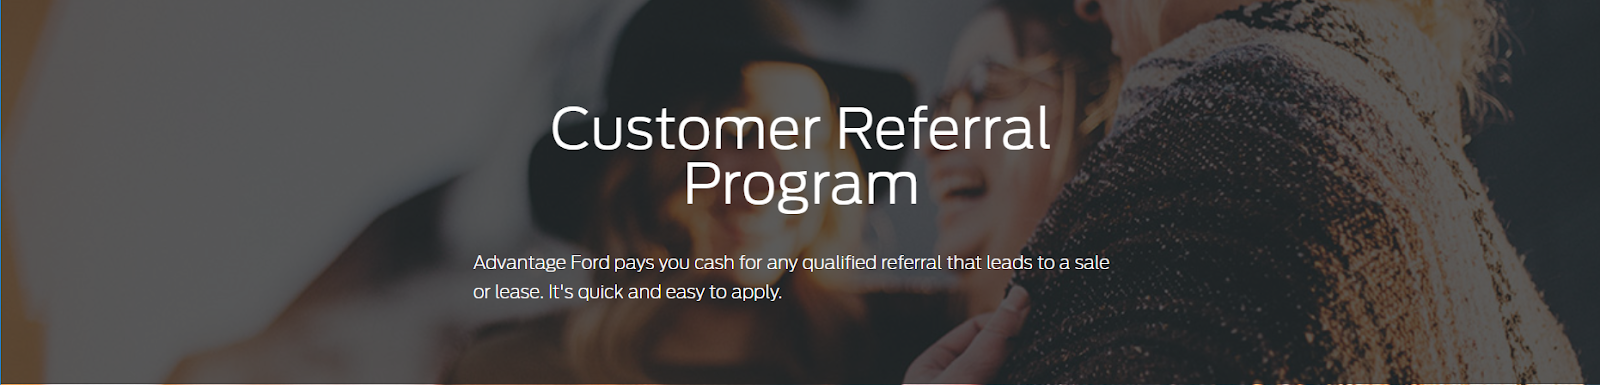 Ford referral program D2C